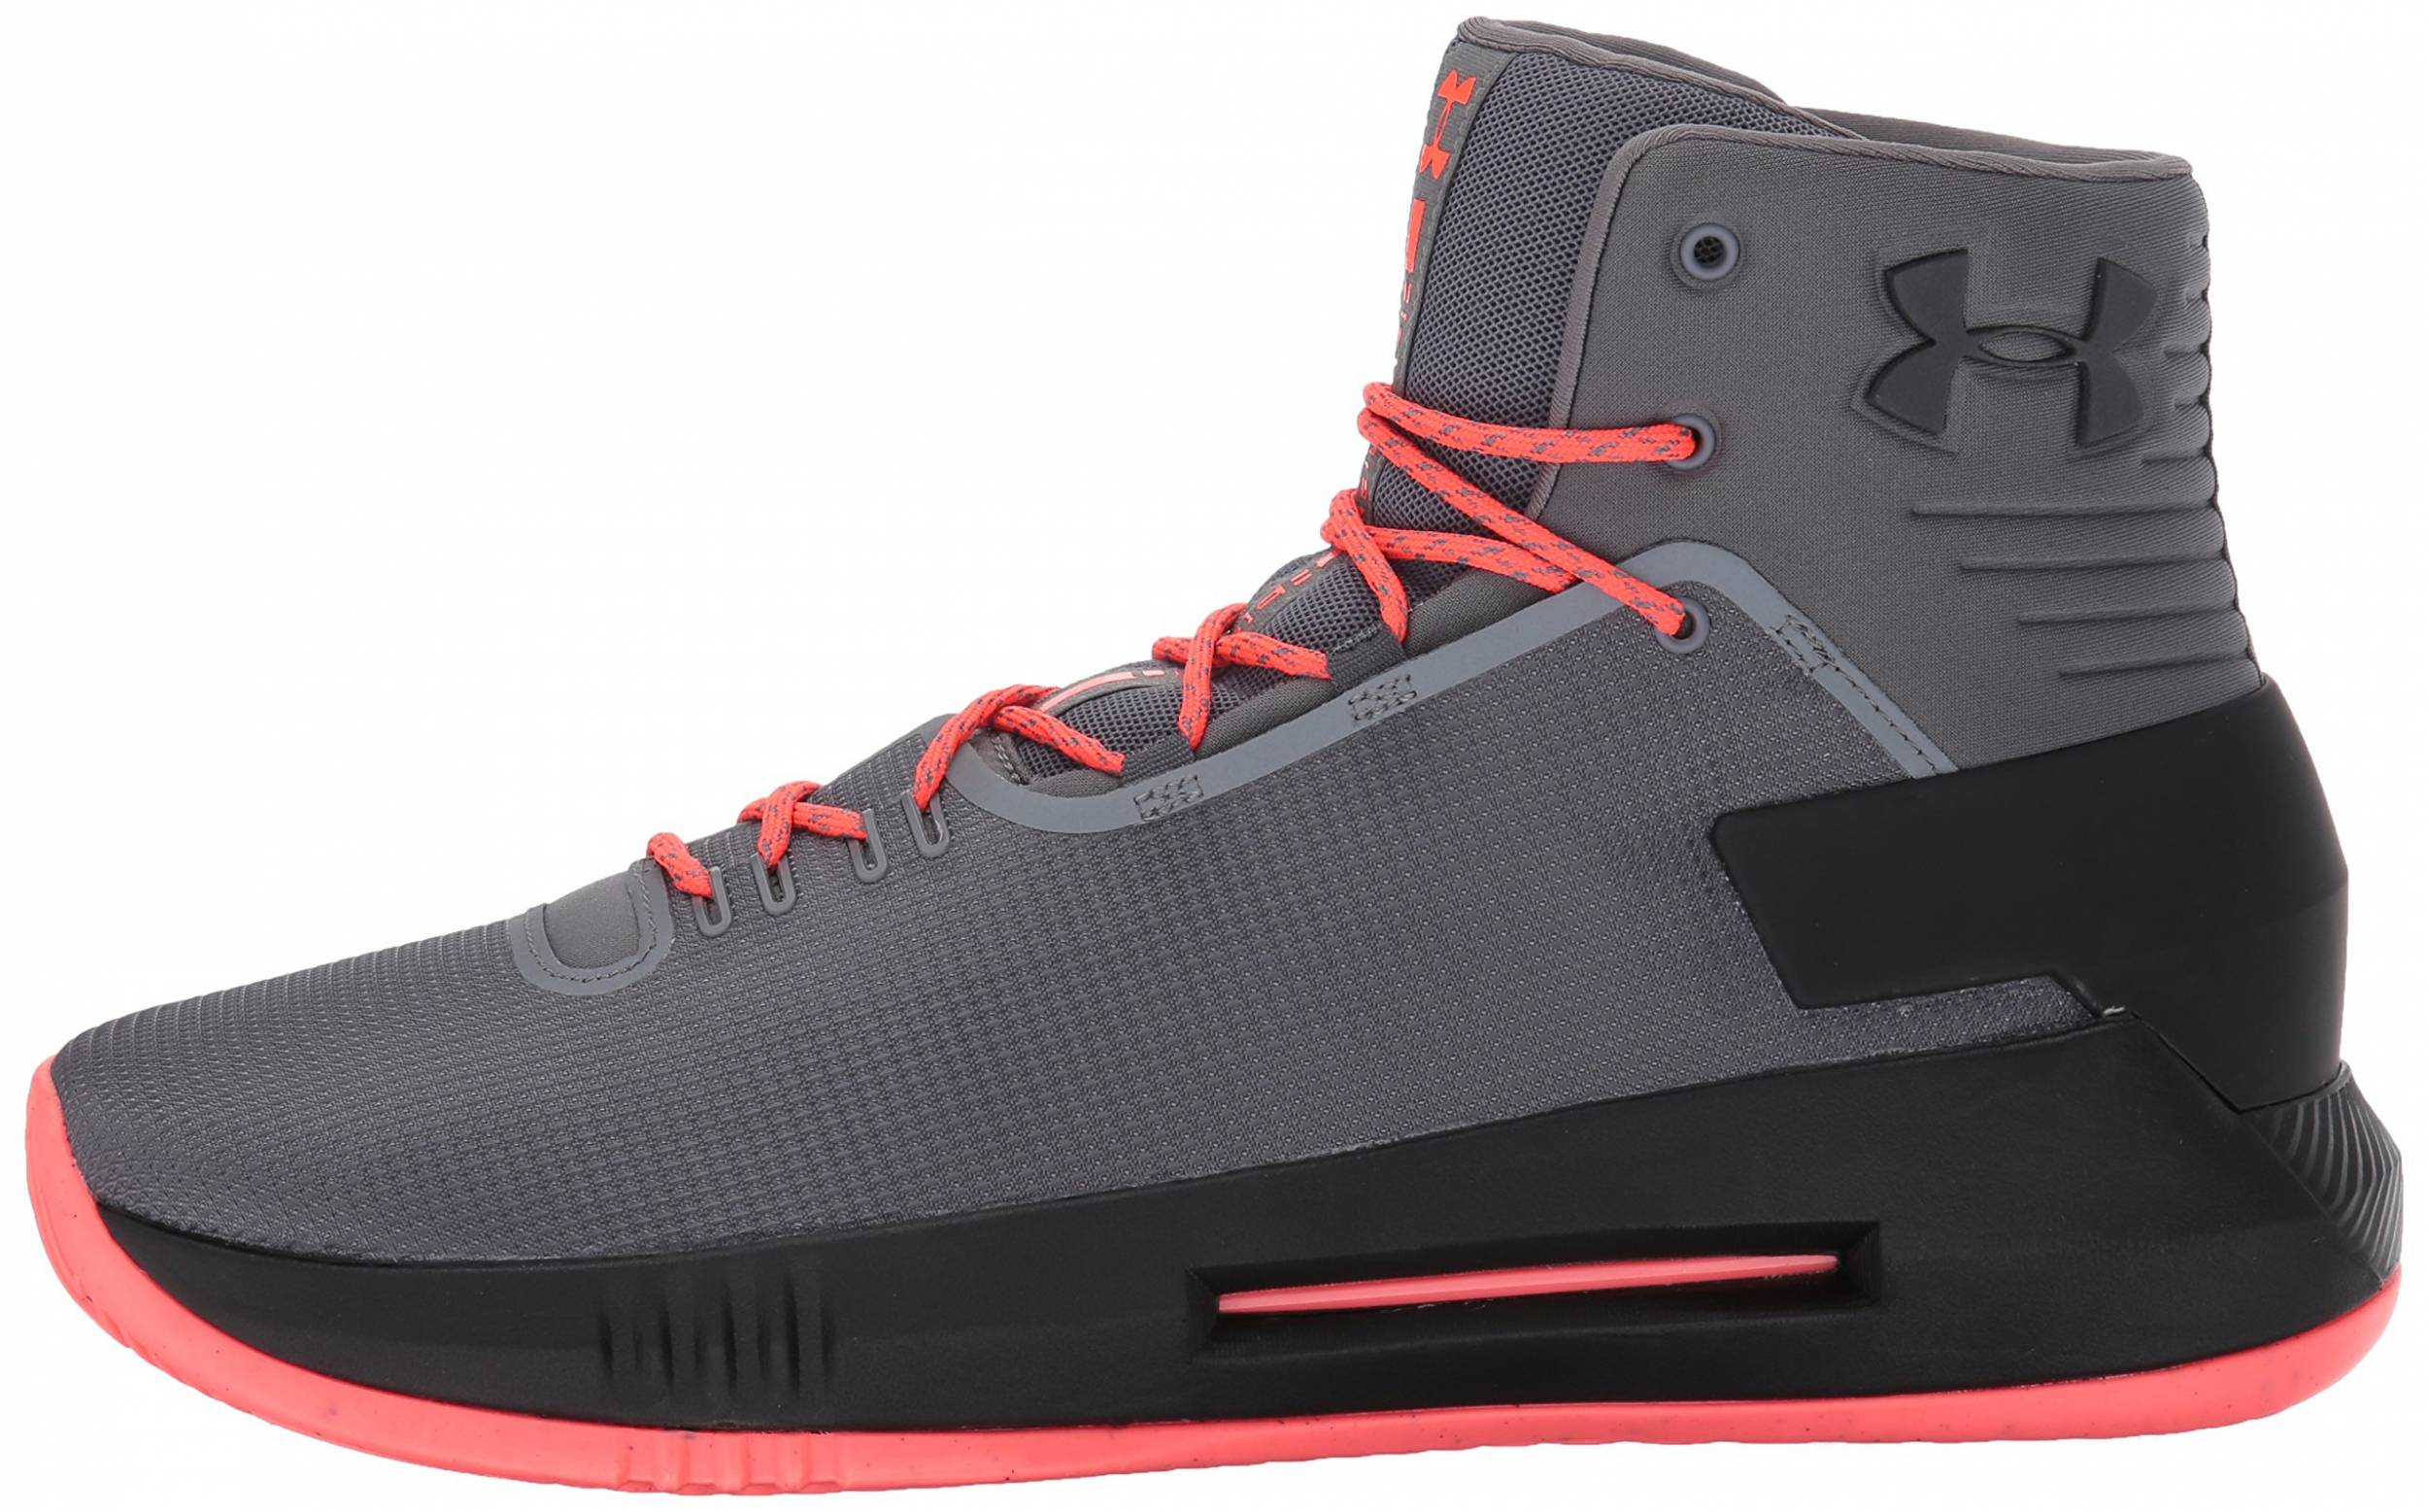 Review of Under Armour Drive 4